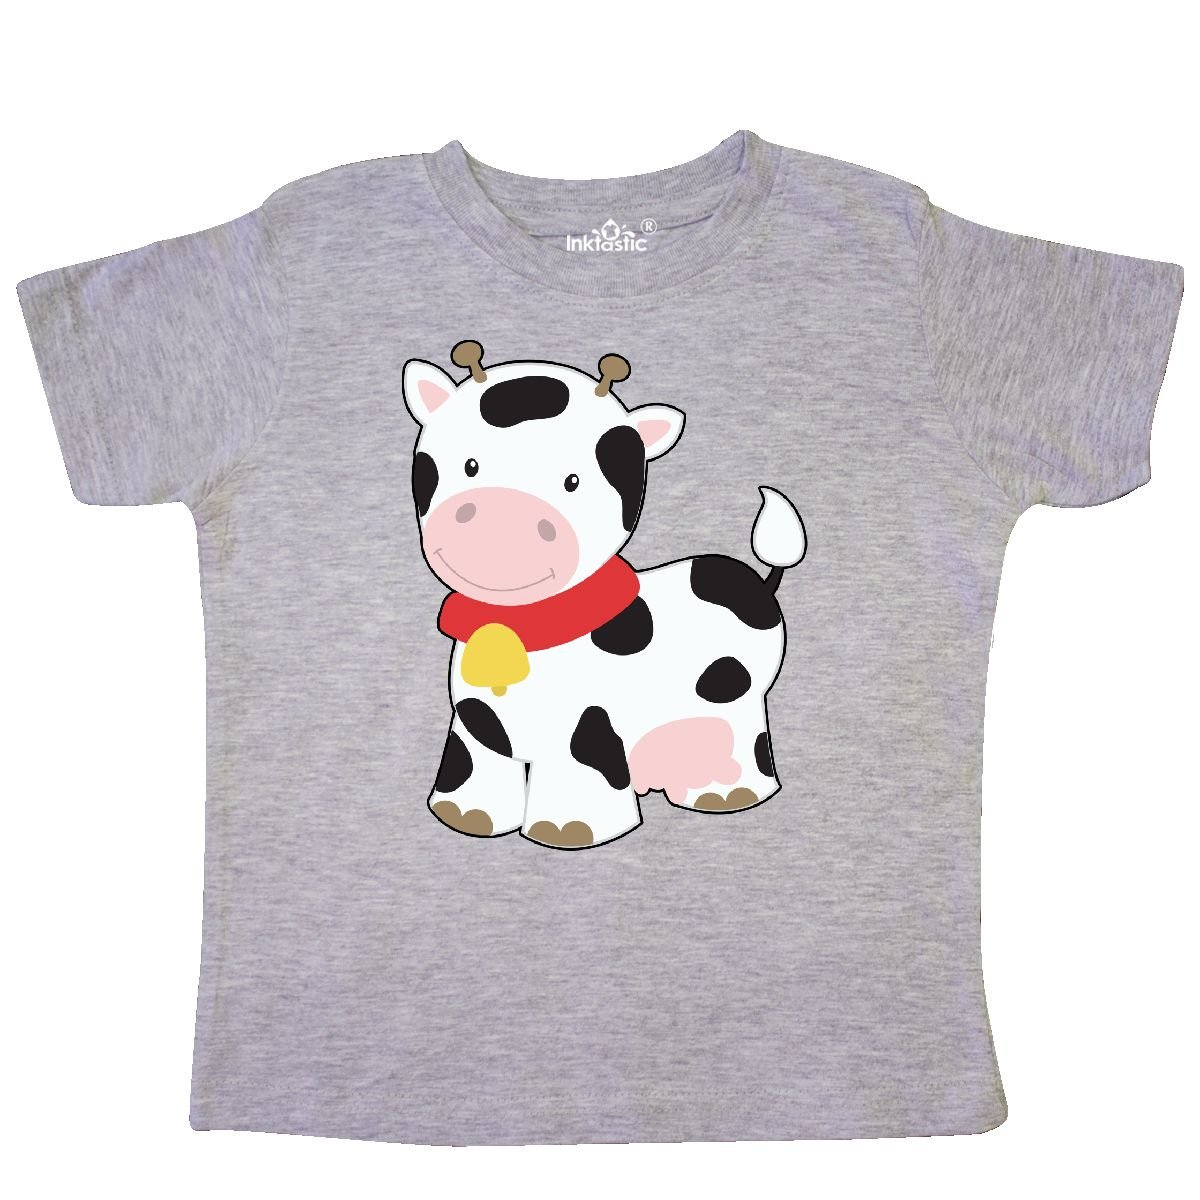 inktastic Cow Toddler T-Shirt